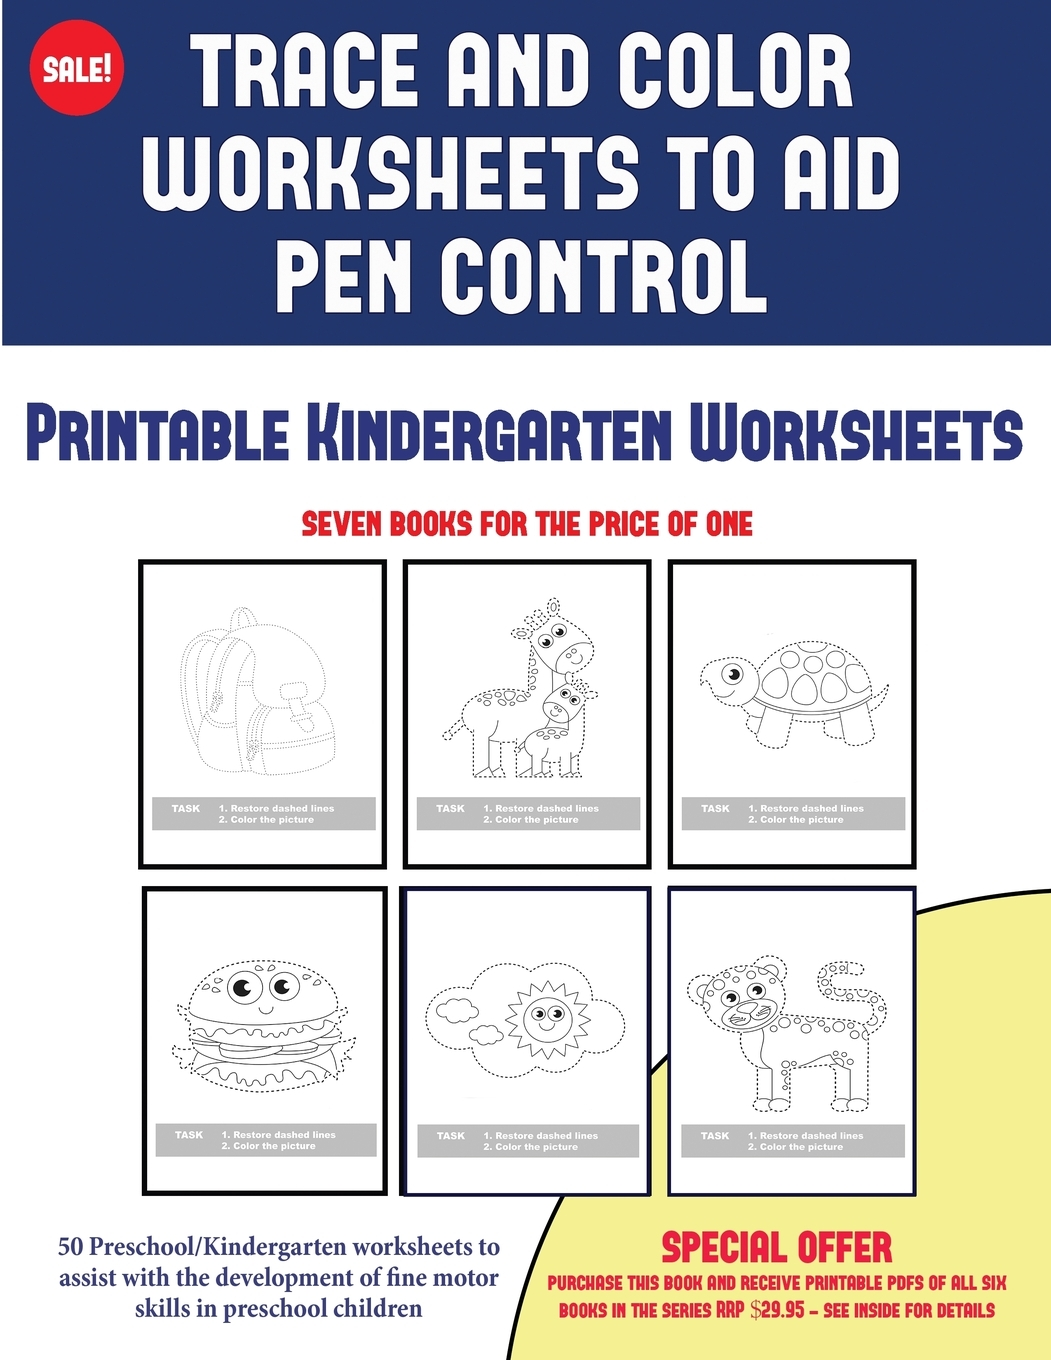 2 Printable Kindergarten Worksheets Trace And Color